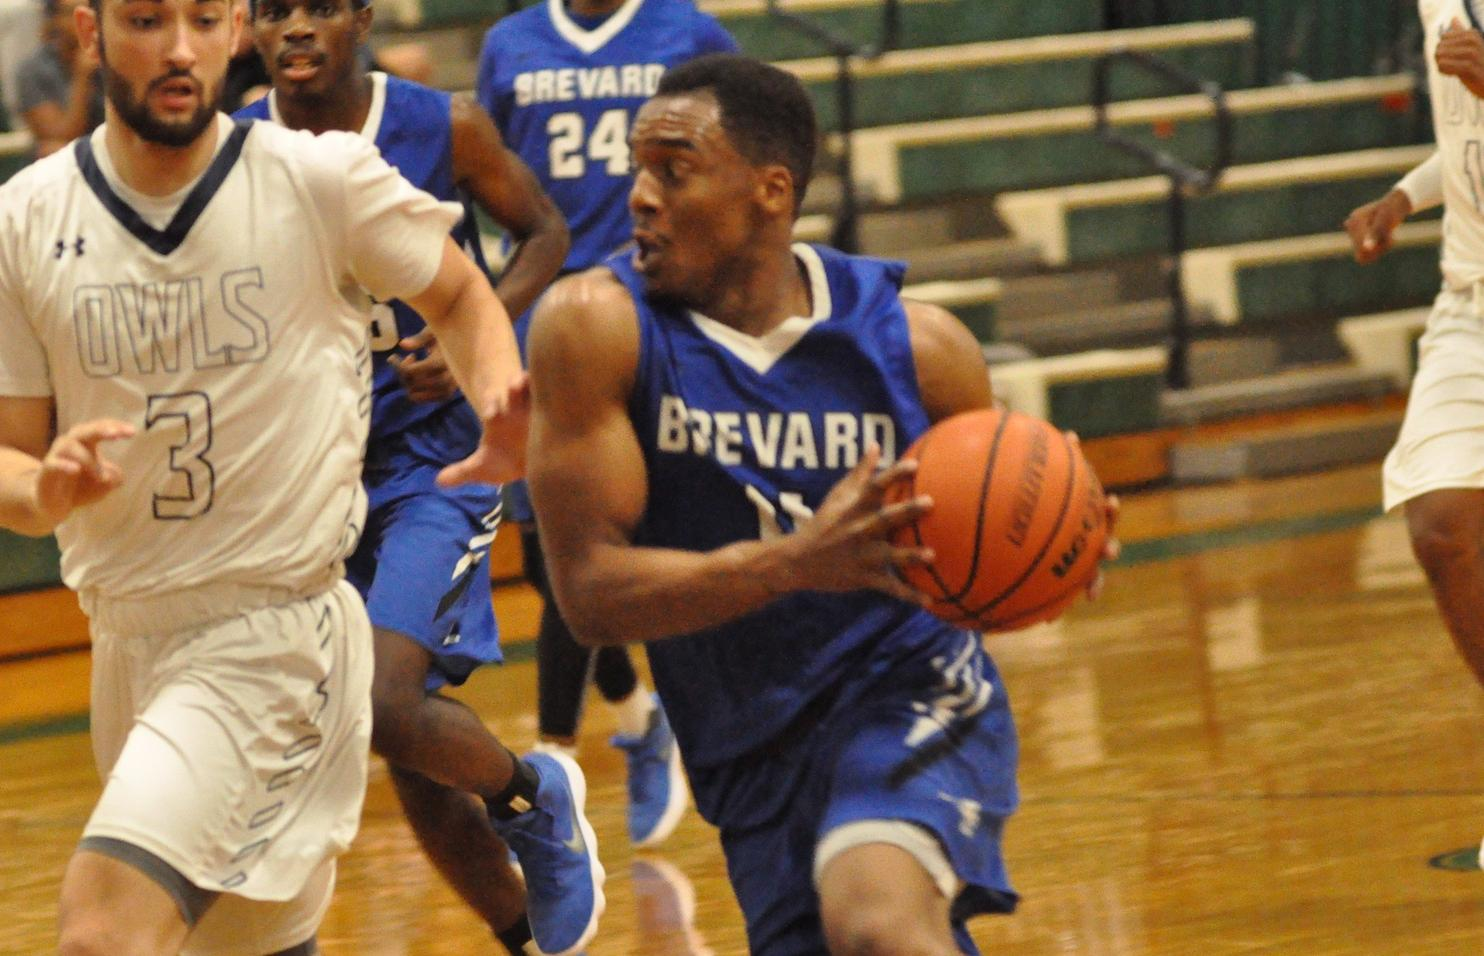 Brevard looks to bounce back against Huntingdon